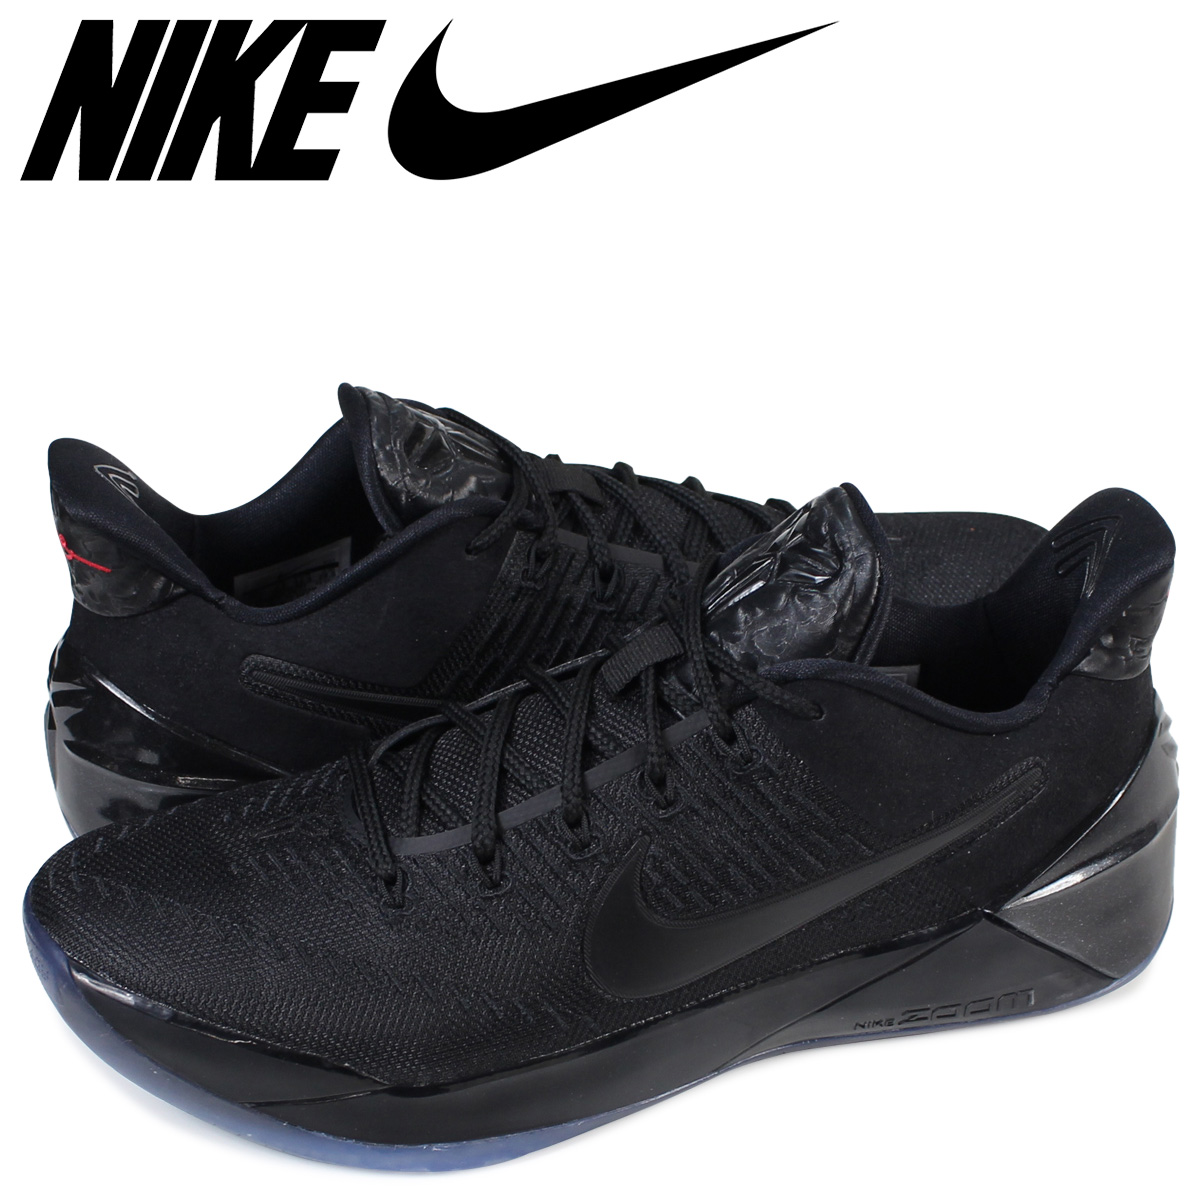 00d7344884c8 Whats up Sports  NIKE KOBE AD Nike Corby sneakers 852